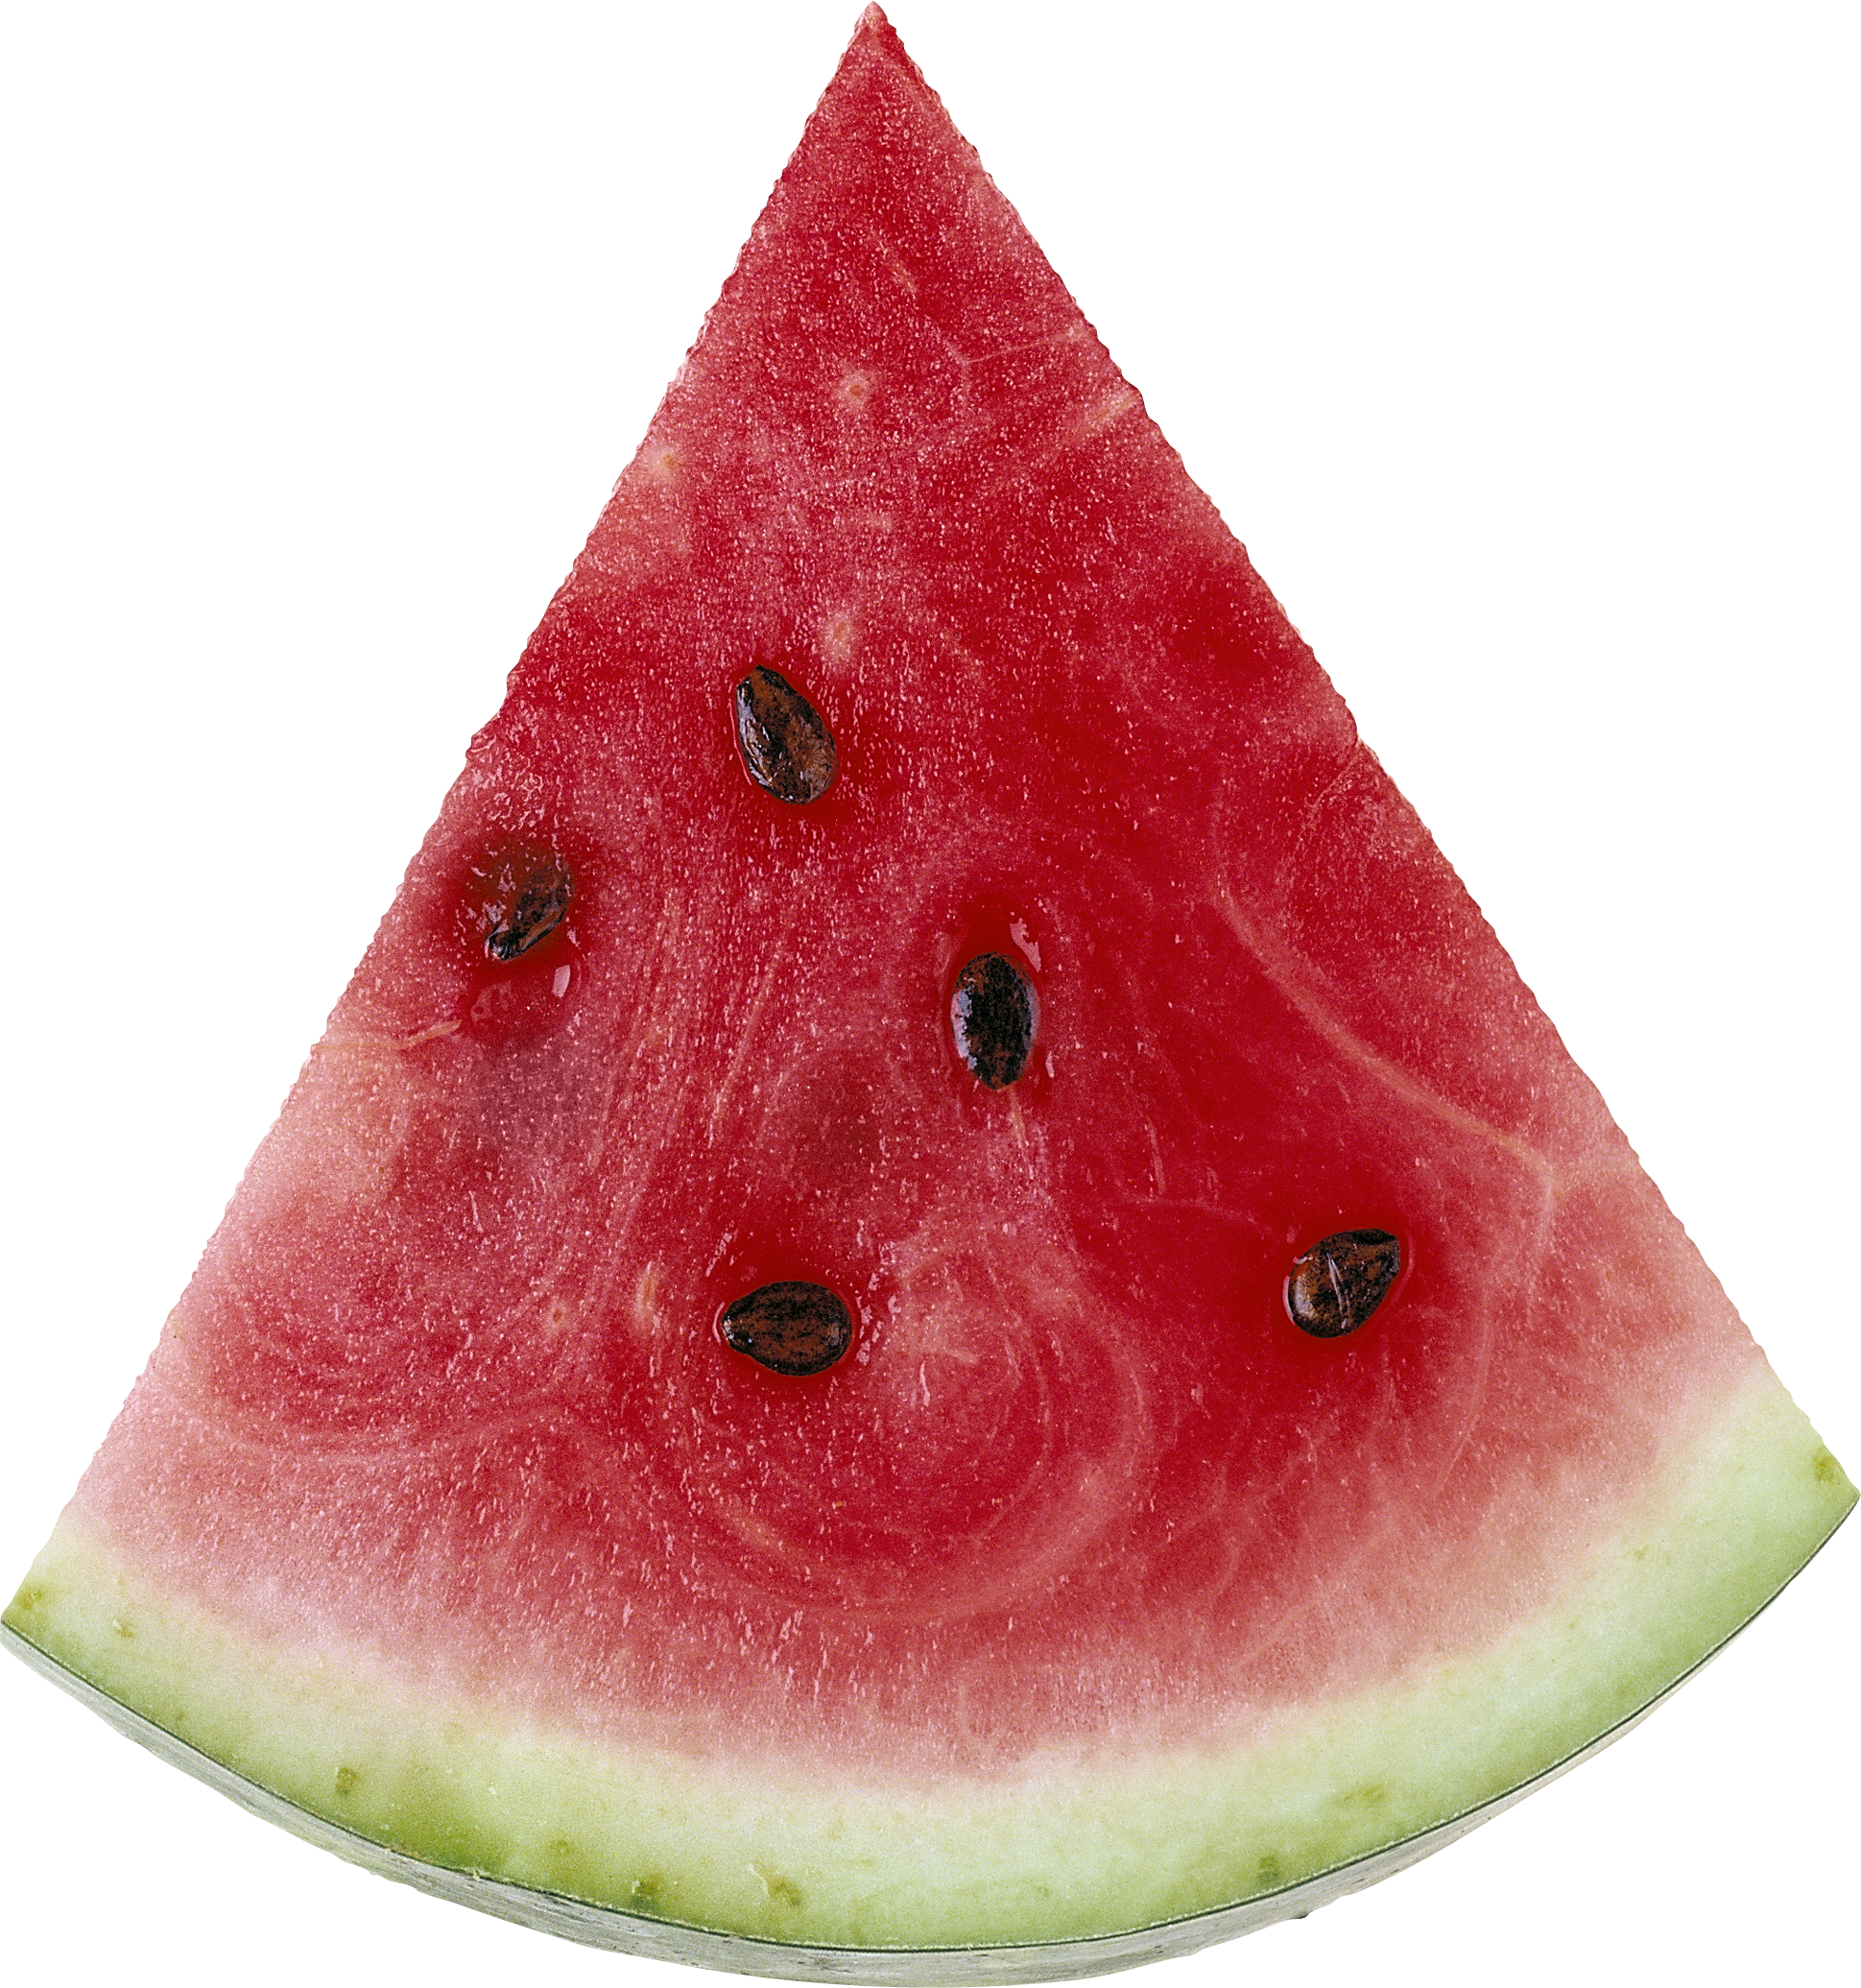 Watermelon seeds png. Eight isolated stock photo